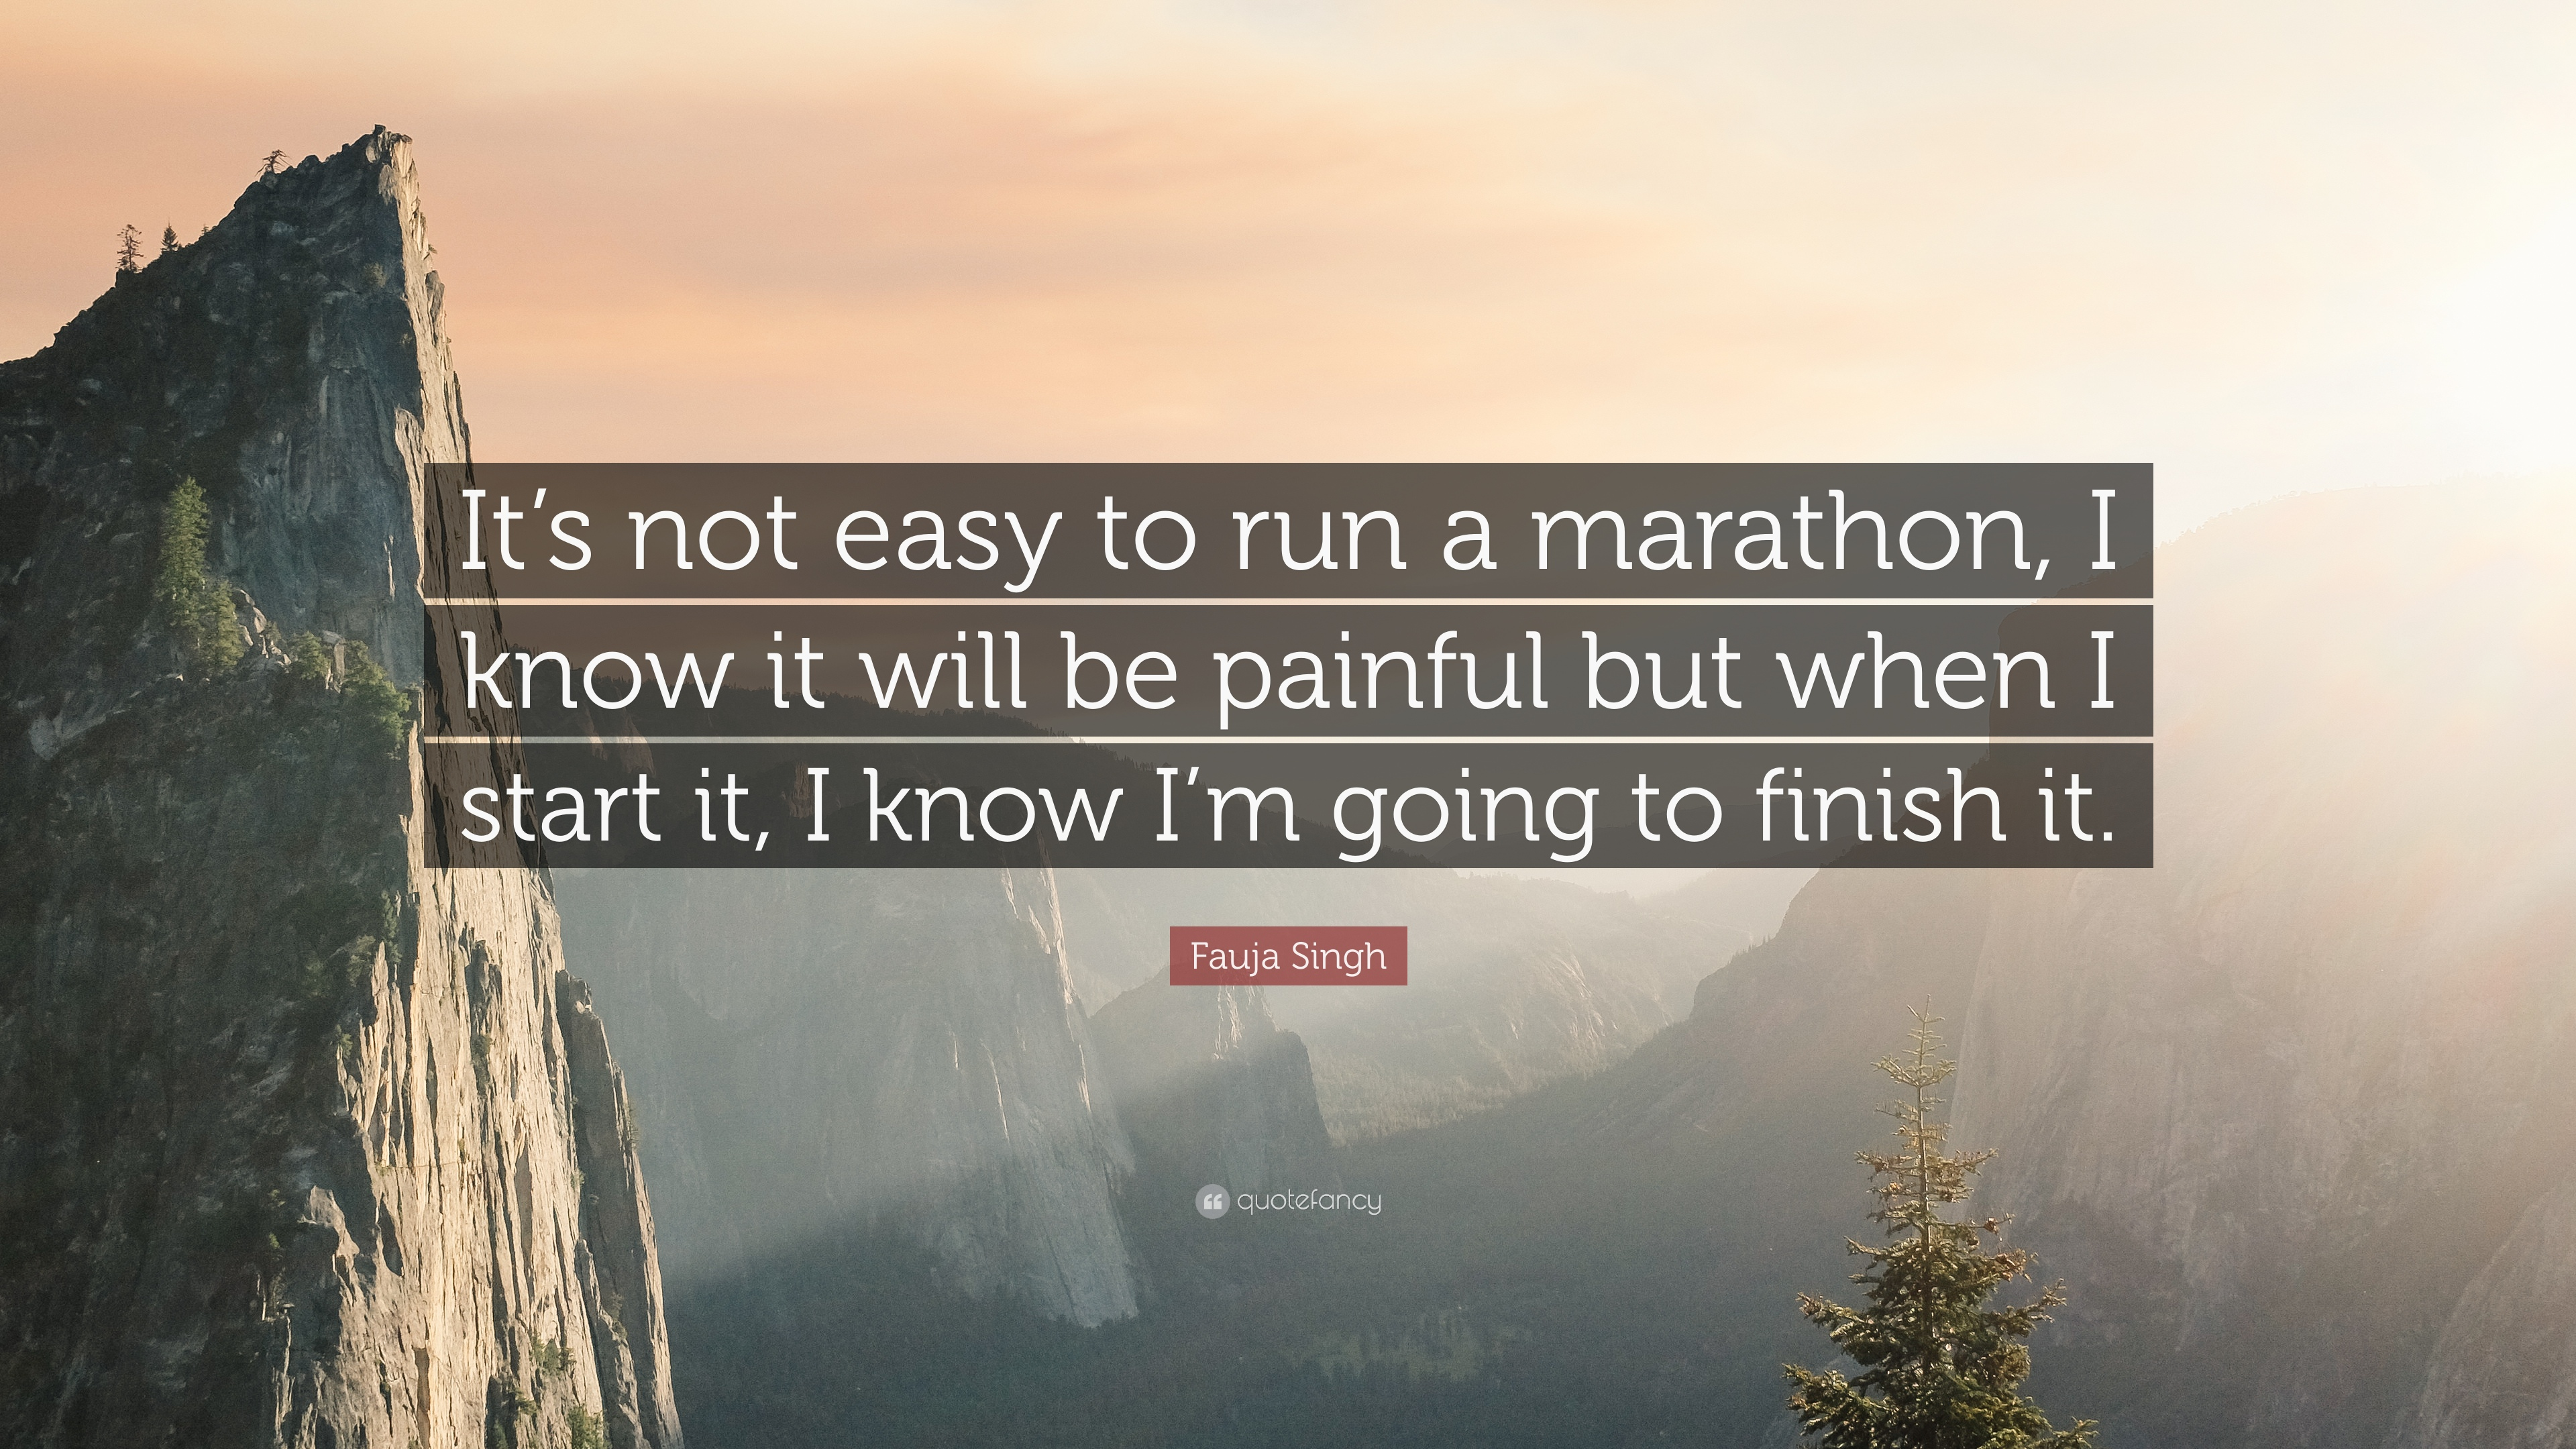 Fauja Singh Quote     It s not easy to run a marathon  I know it will     Fauja Singh Quote     It s not easy to run a marathon  I know it